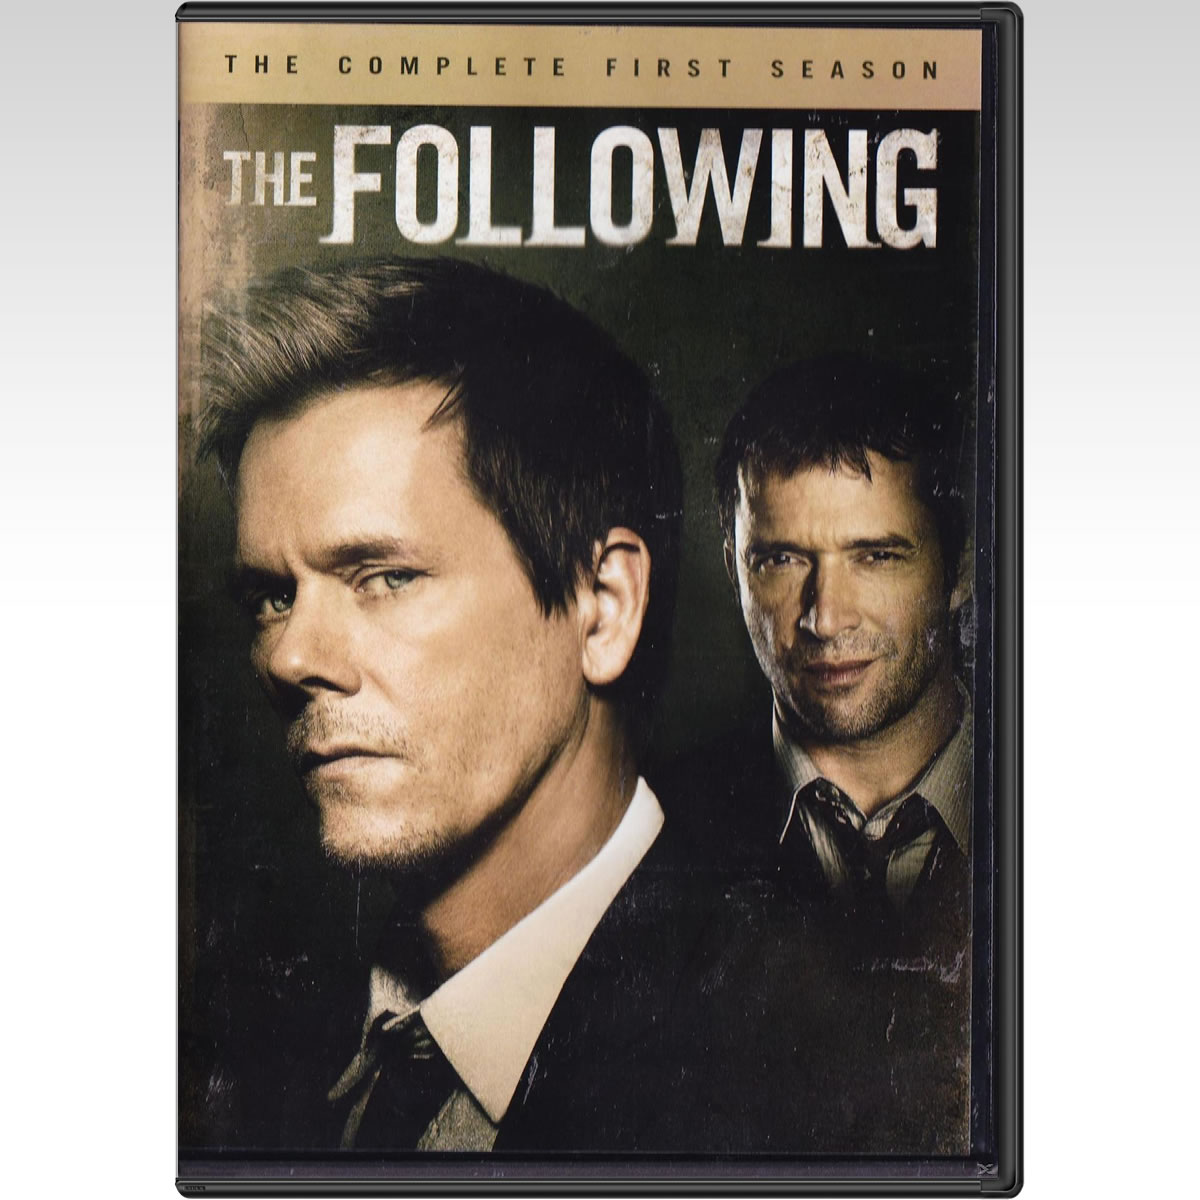 THE FOLLOWING: THE COMPLETE 1st SEASON - THE FOLLOWING: 1η ΠΕΡΙΟΔΟΣ (4 DVDs)